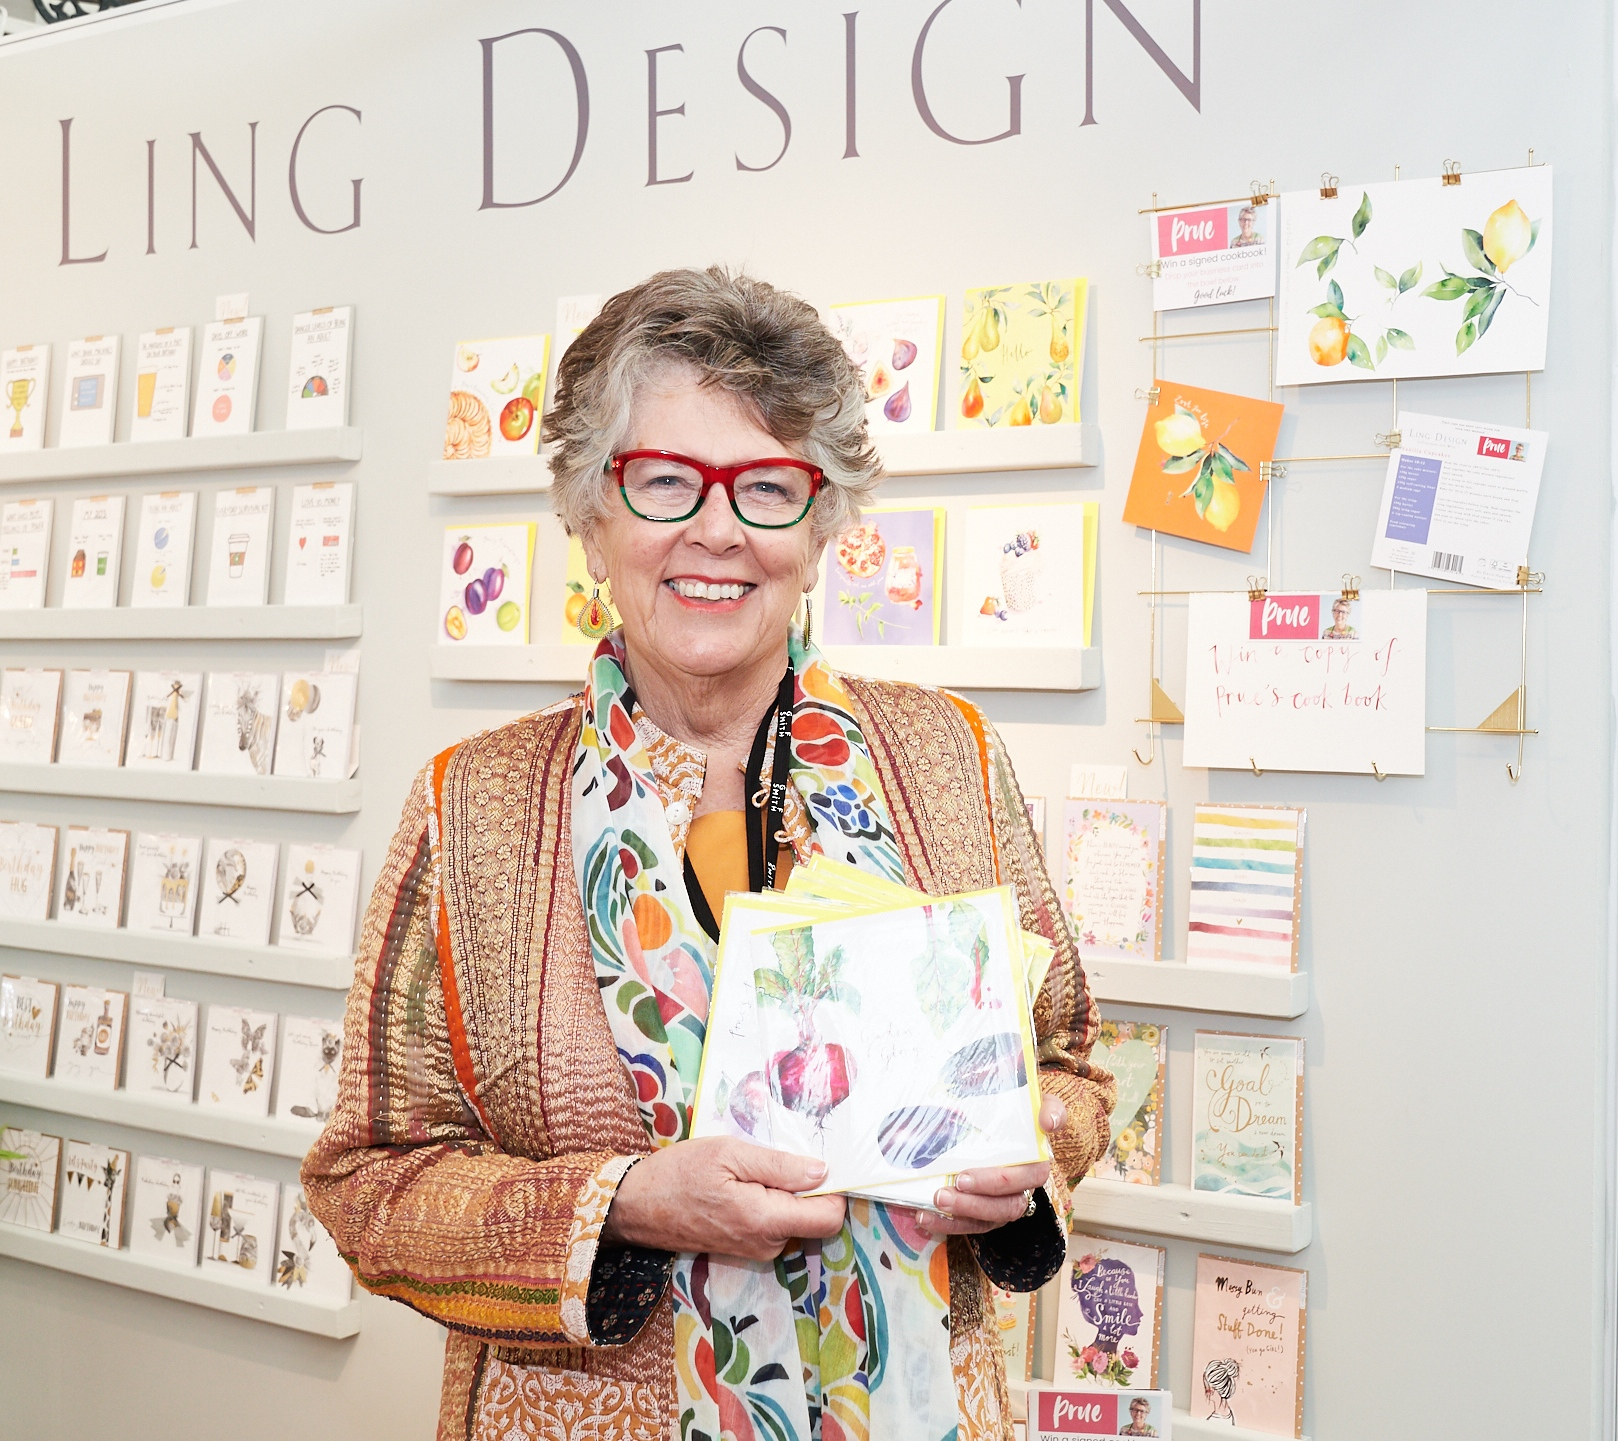 Above: Prue Leith holding some of the new cards on the Ling Design stand.